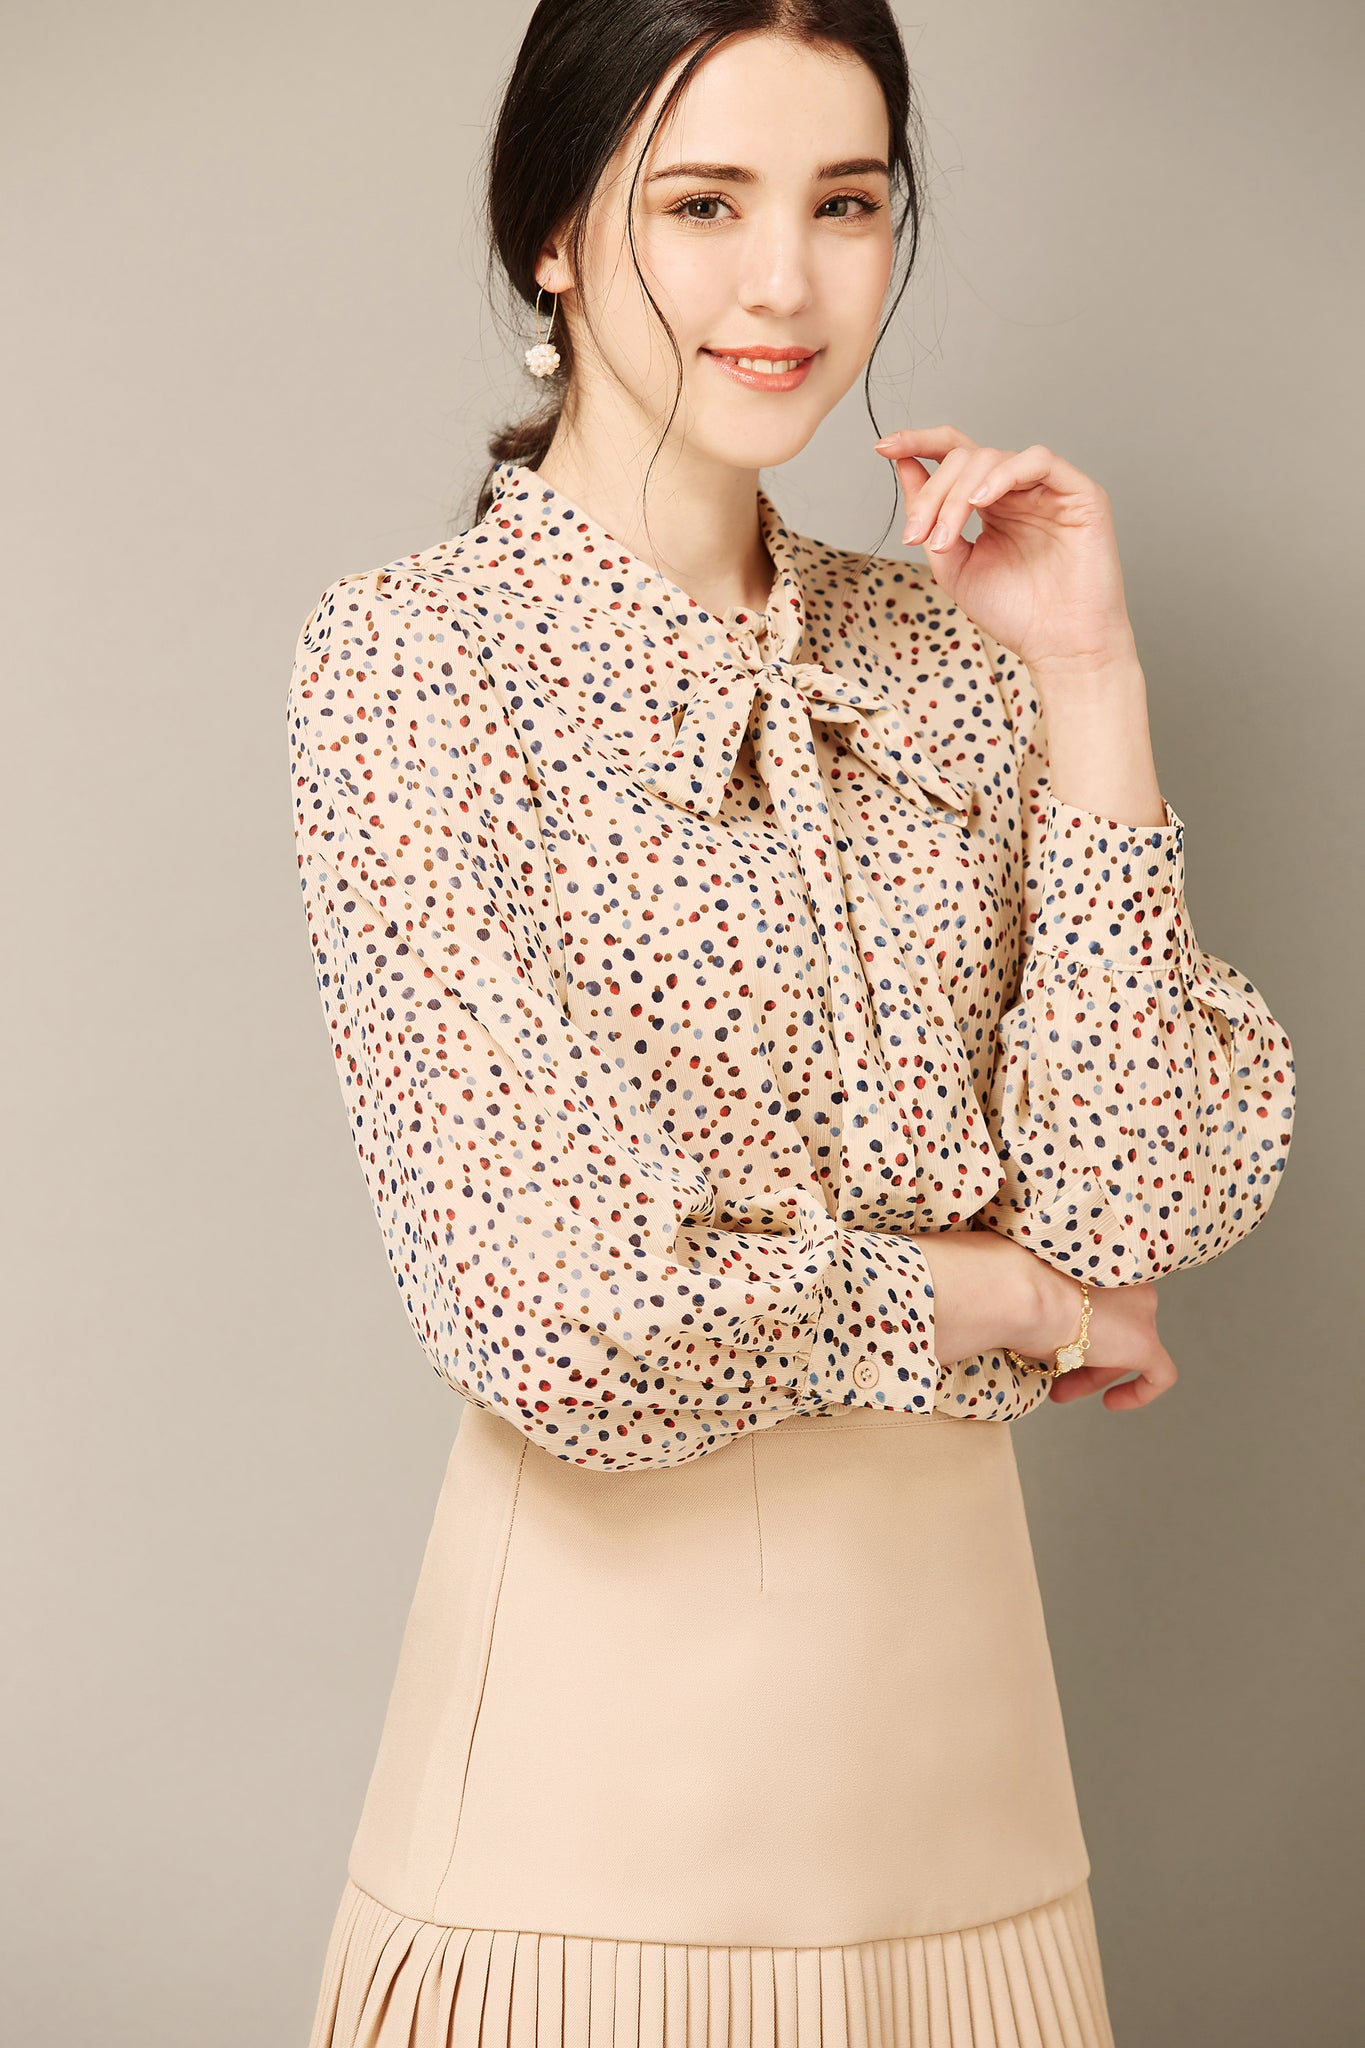 Beige Polka Dot Top